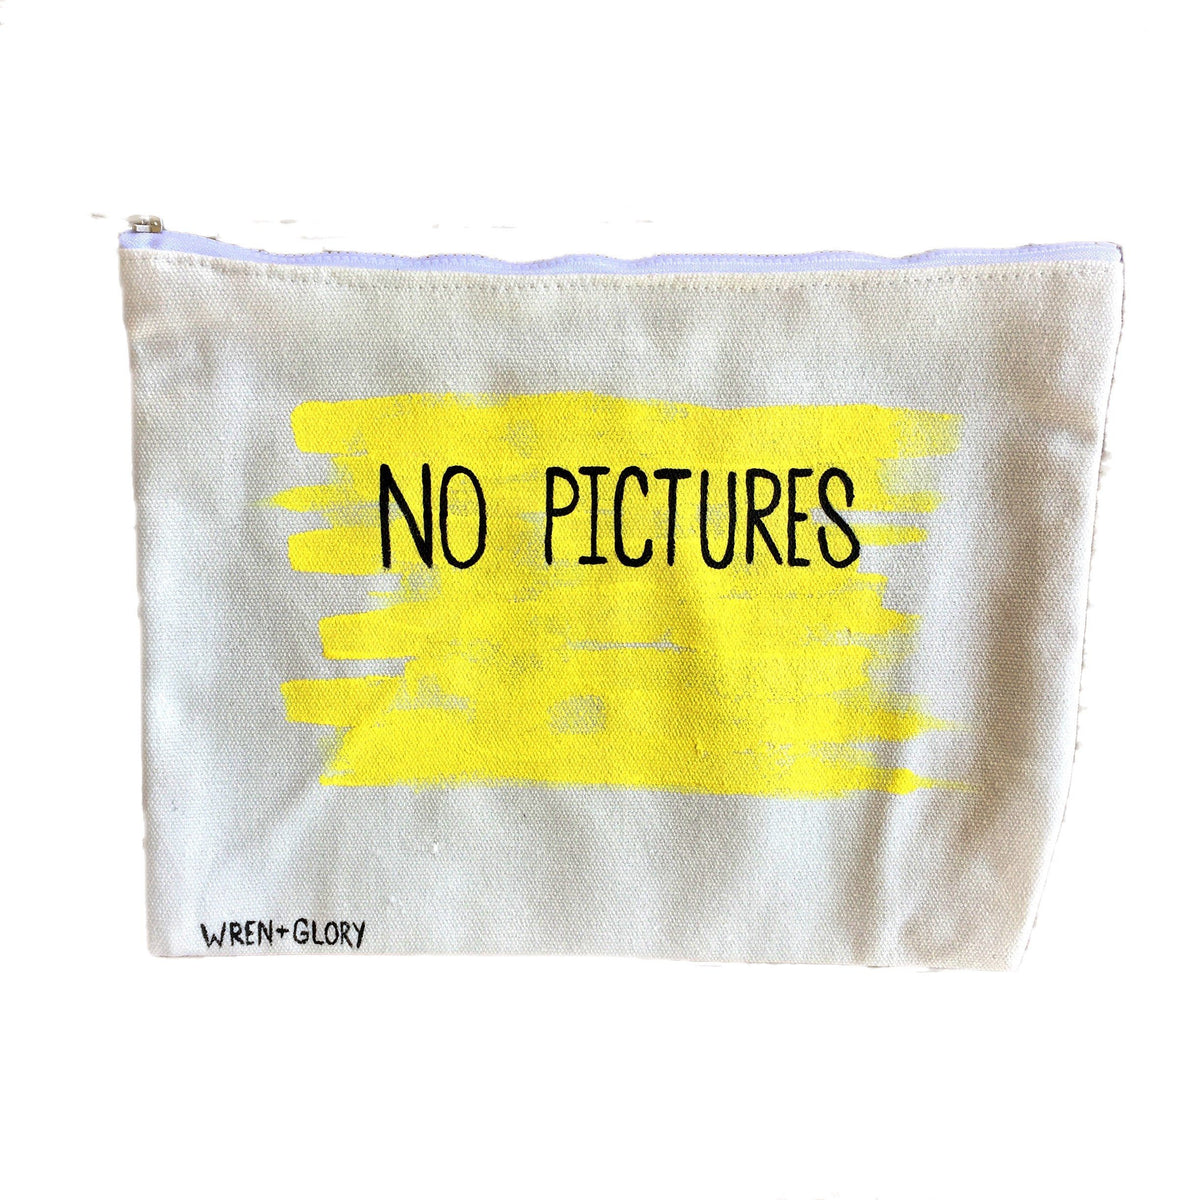 'NO PICTURES' PAINTED POUCH